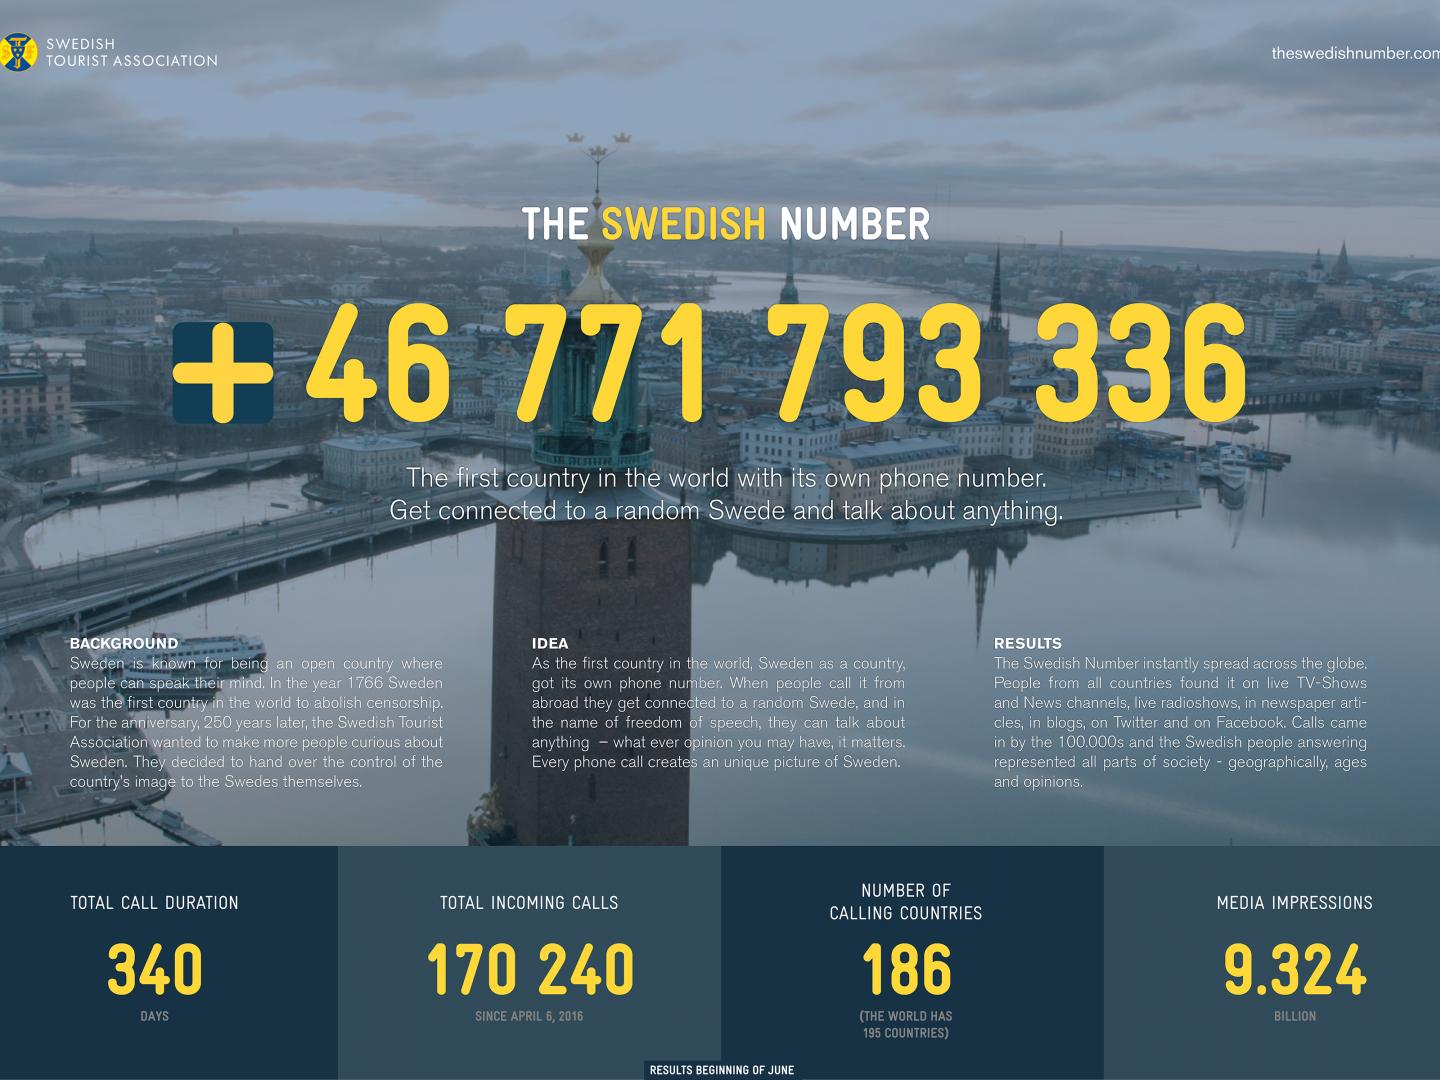 The Swedish Number Thumbnail